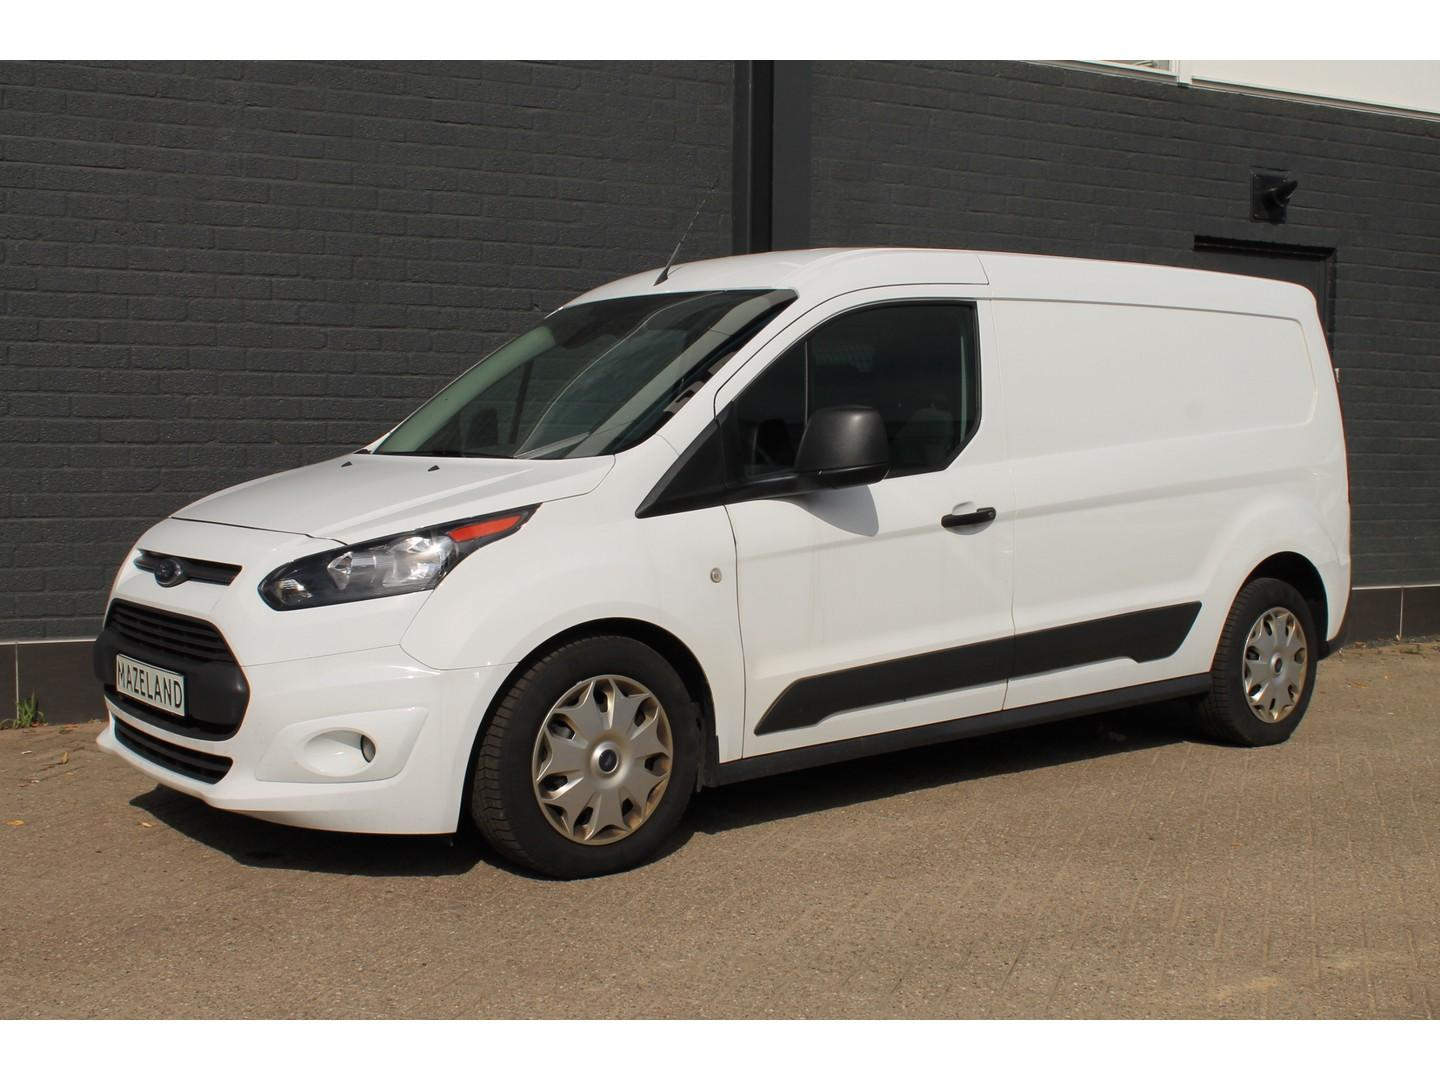 Ford Transit connect 1.5 tdci 120pk automaat l2 - climate - navi - cruise - pdc - € 12.950,- ex.